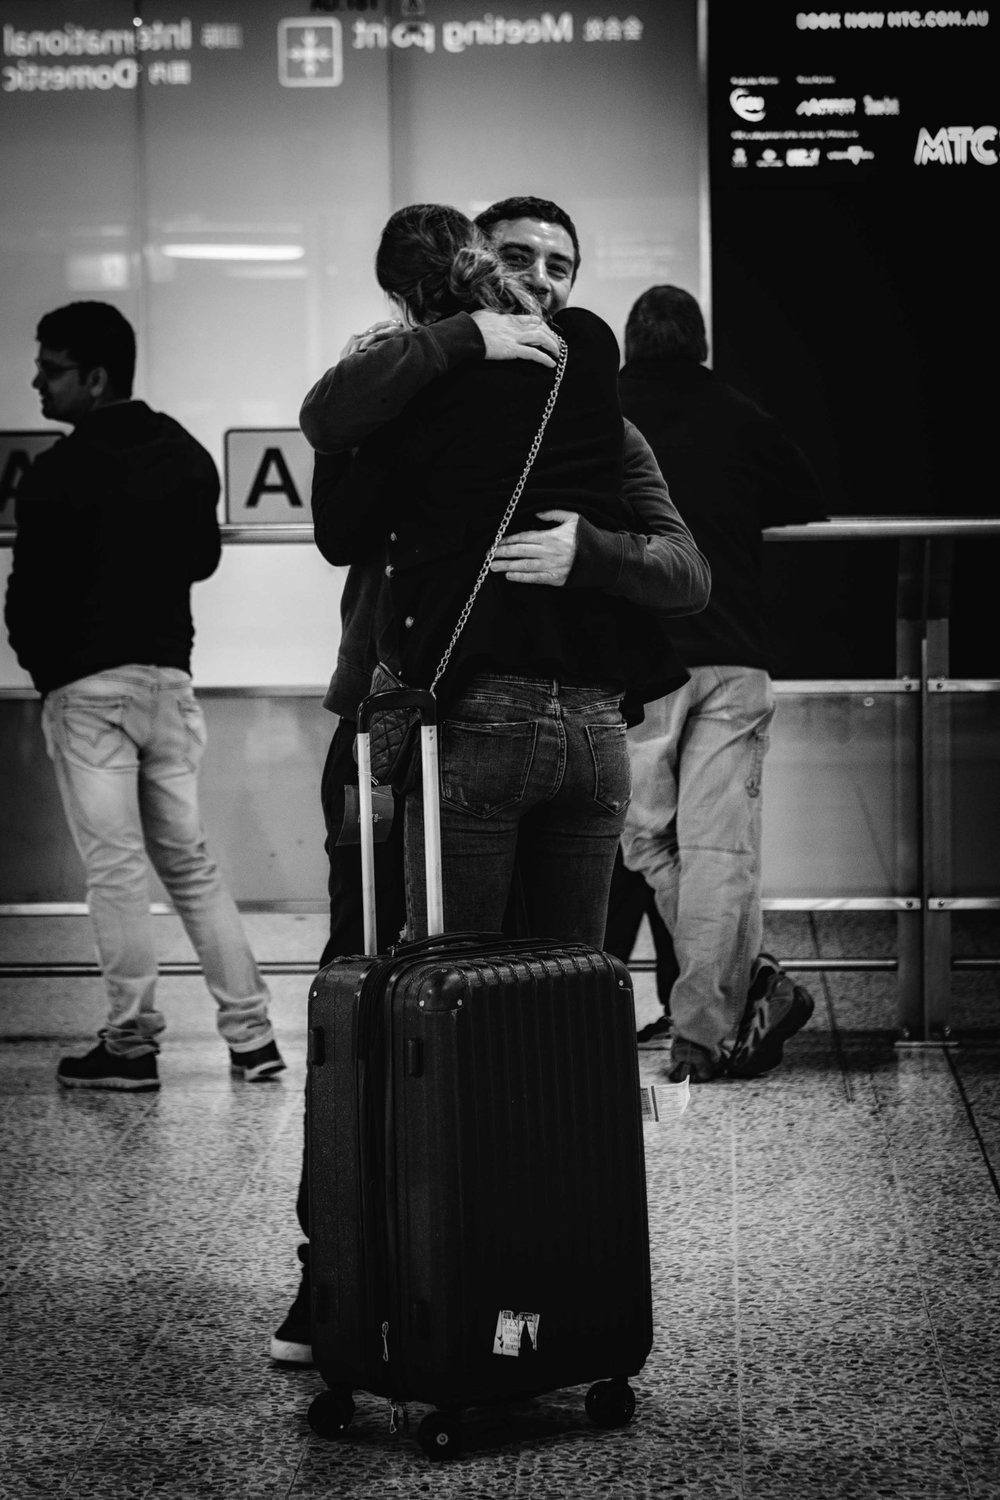 Melbourne airport love-7-2.jpg